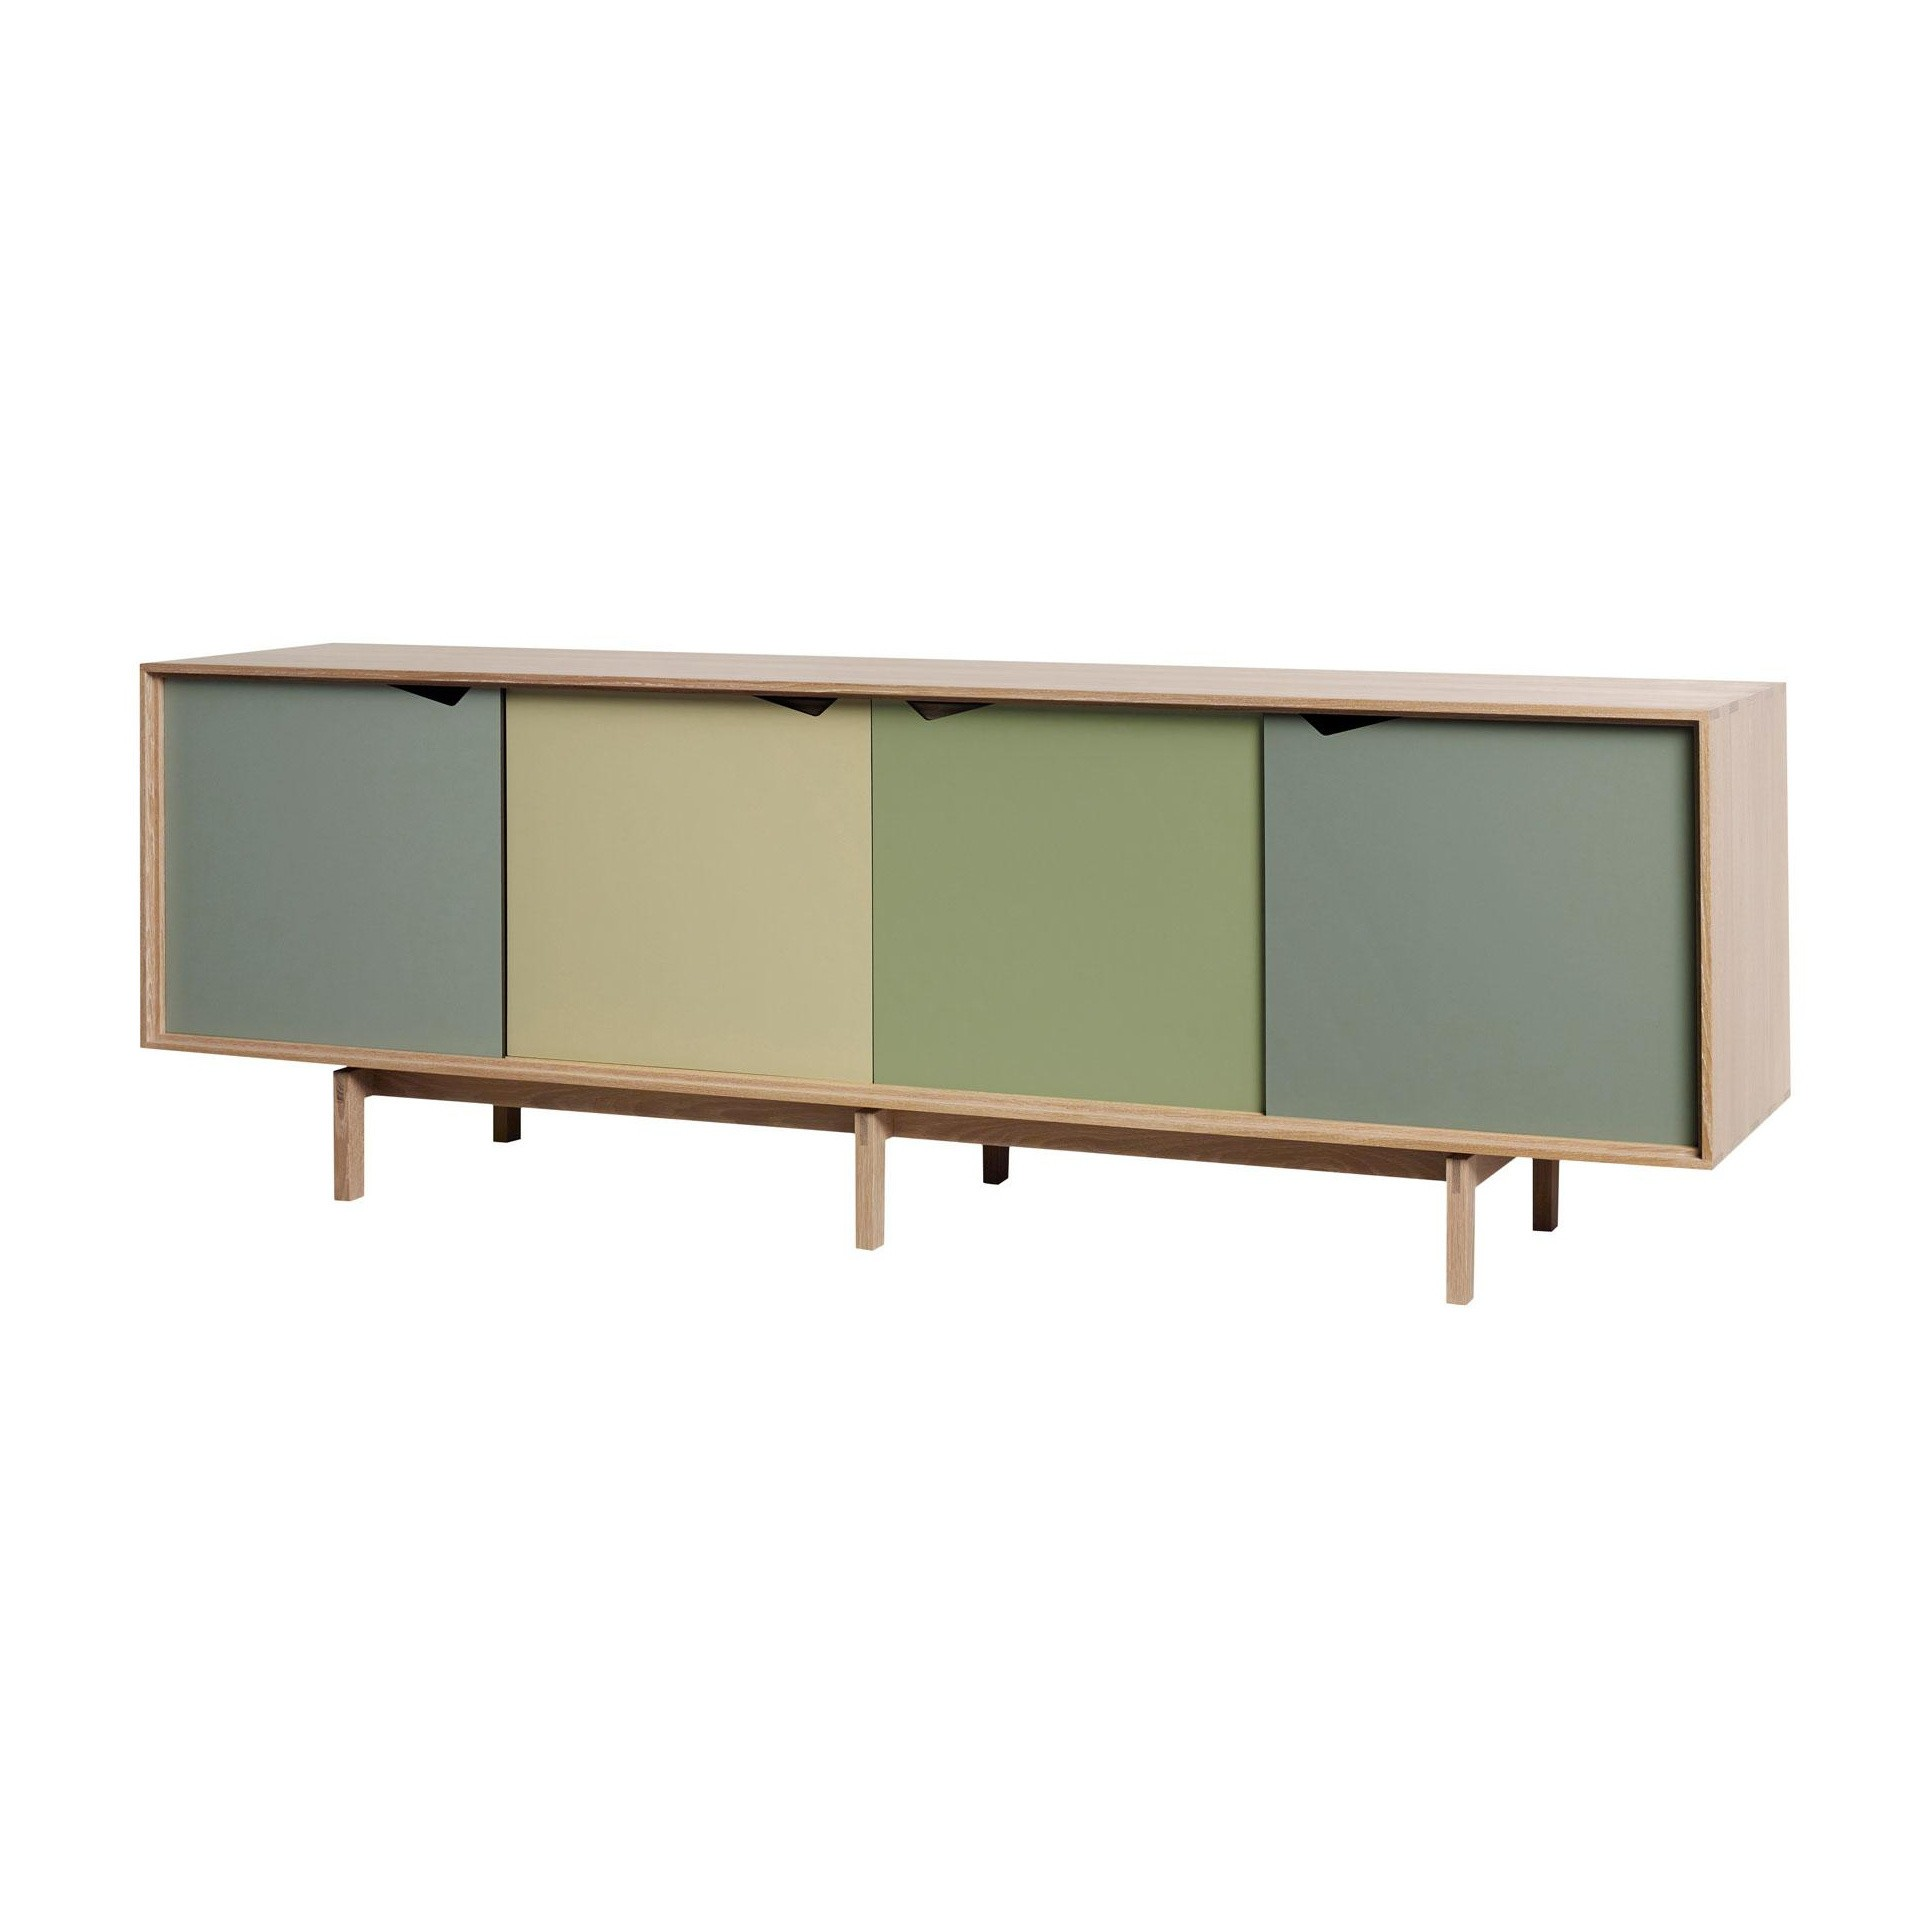 Sideboard Türen Andersen Furniture S1 Sideboard Türen Bunt | Ambientedirect